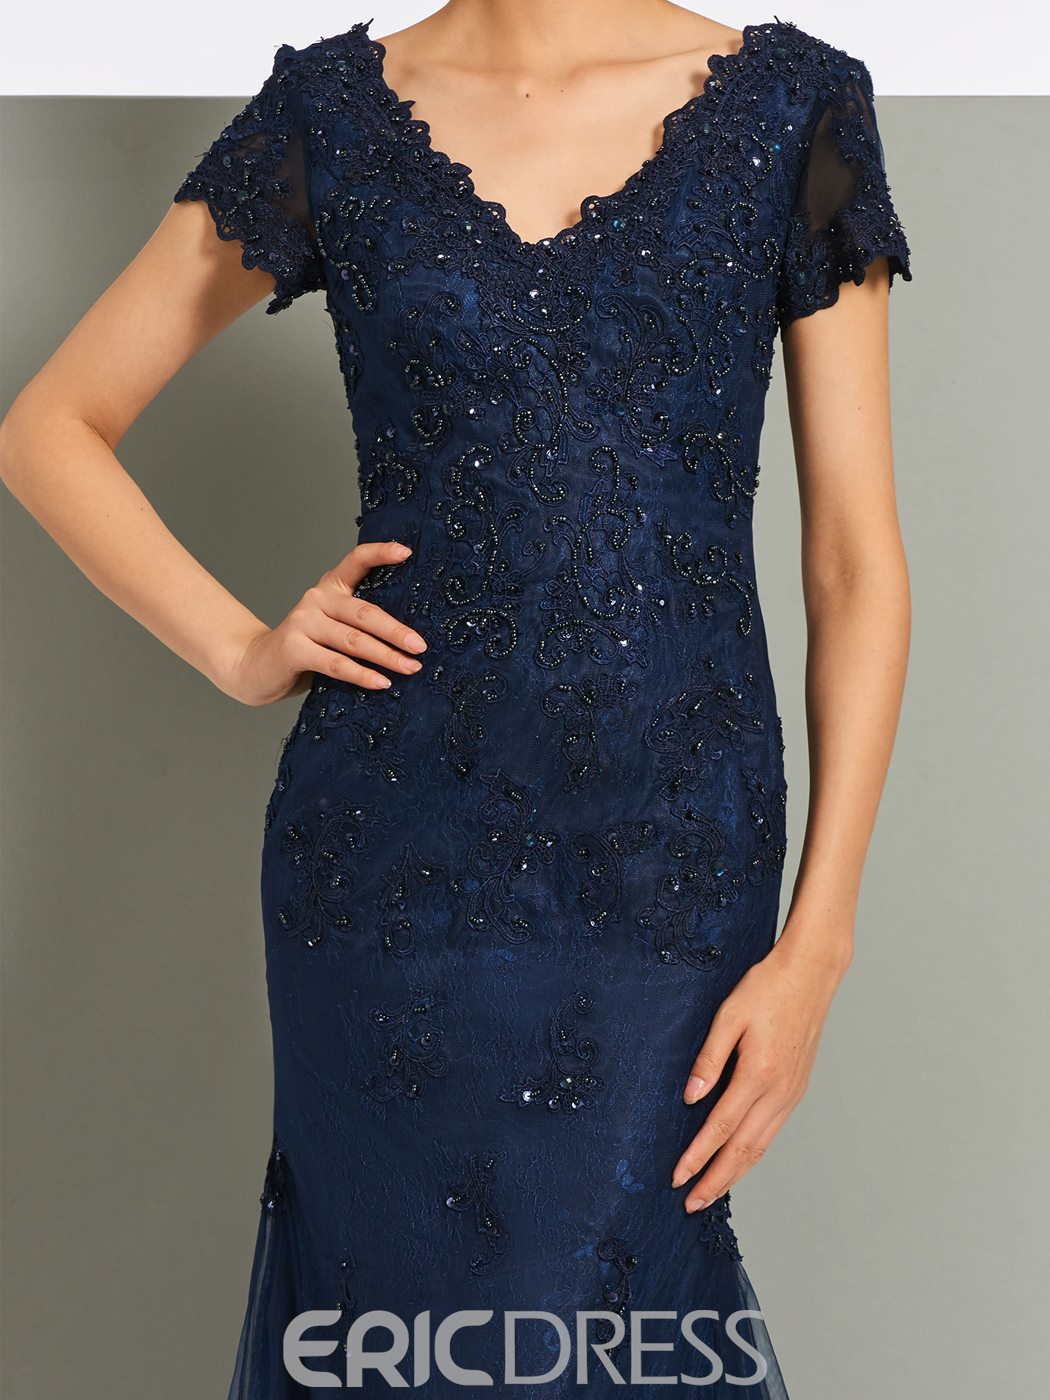 Ericdress V-Neck Lace Short Sleeves Mermaid Evening Dress